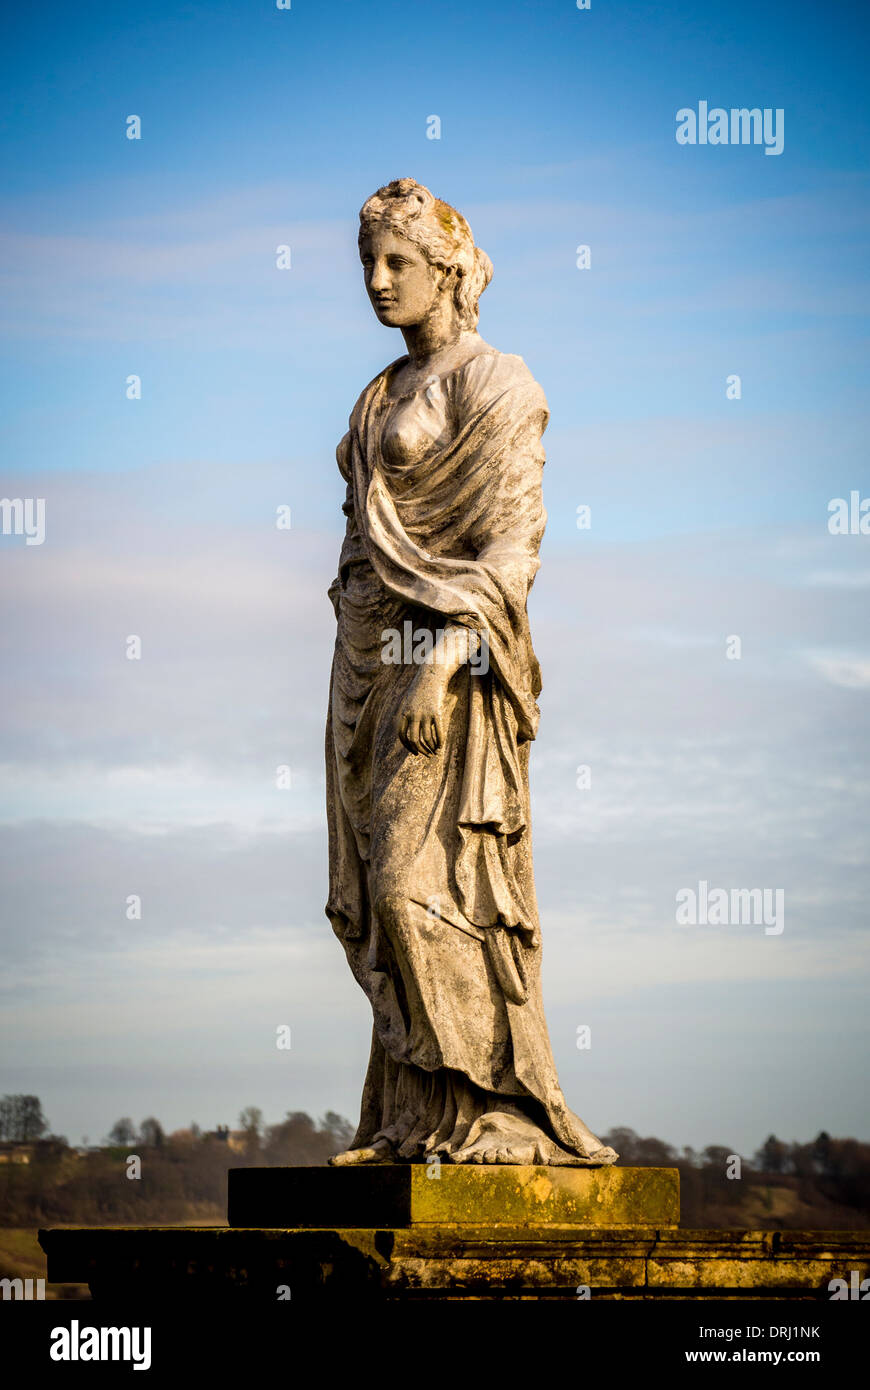 Statue on the Temple of the Four Winds. Castle Howard, North Yorkshire. - Stock Image